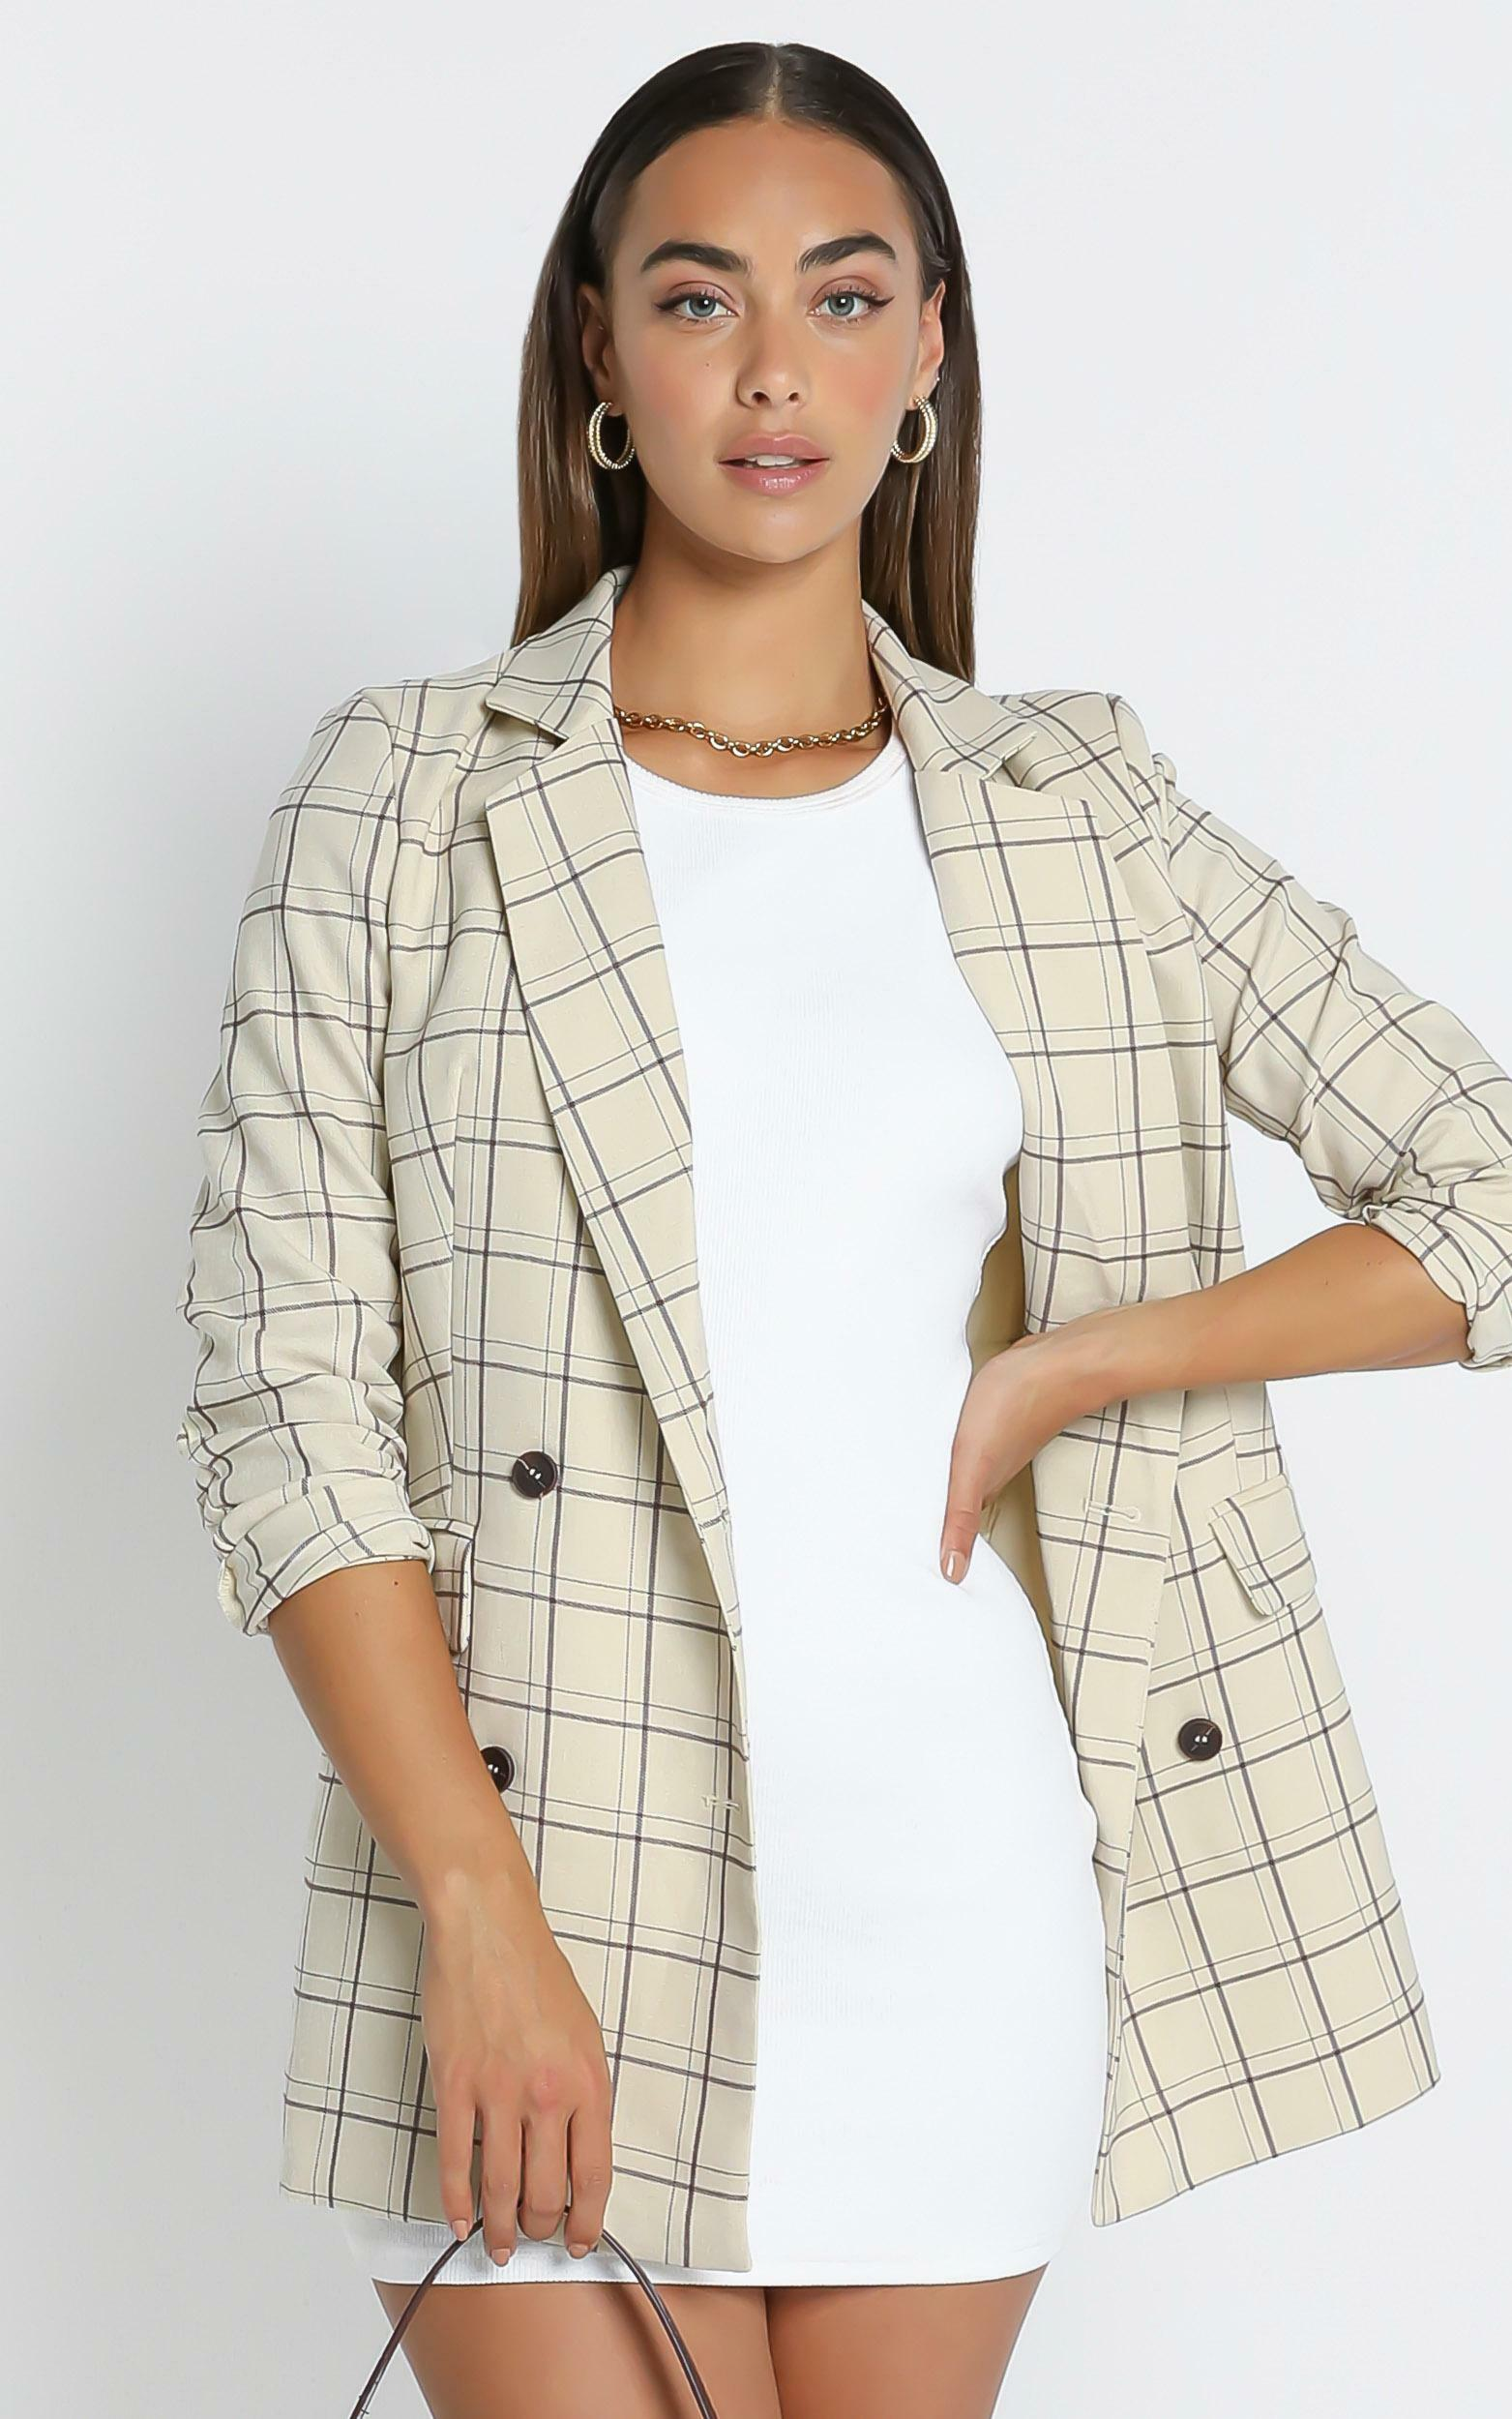 Sort it out Blazer in Cream Check - 4 (XXS), Cream, hi-res image number null